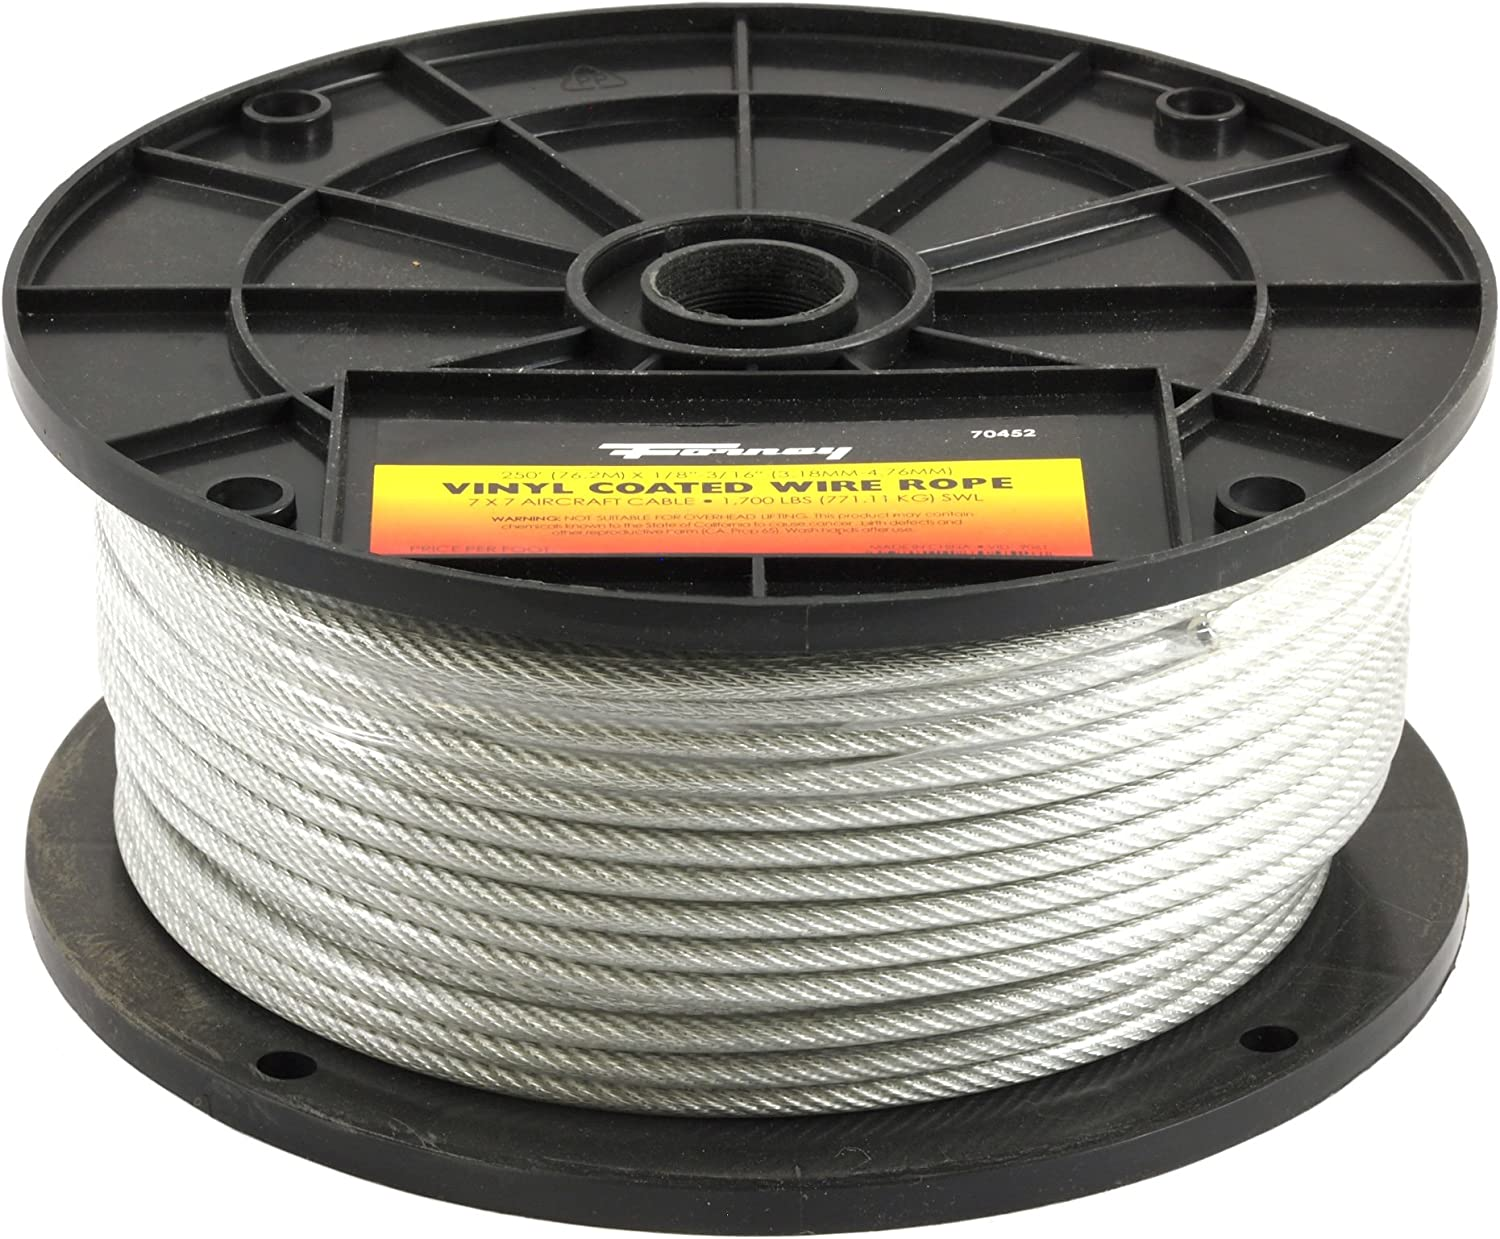 Cable Clips 500 1//8 7x7 Galvanized Aircraft Cable Wire Rope Includes 25 pcs